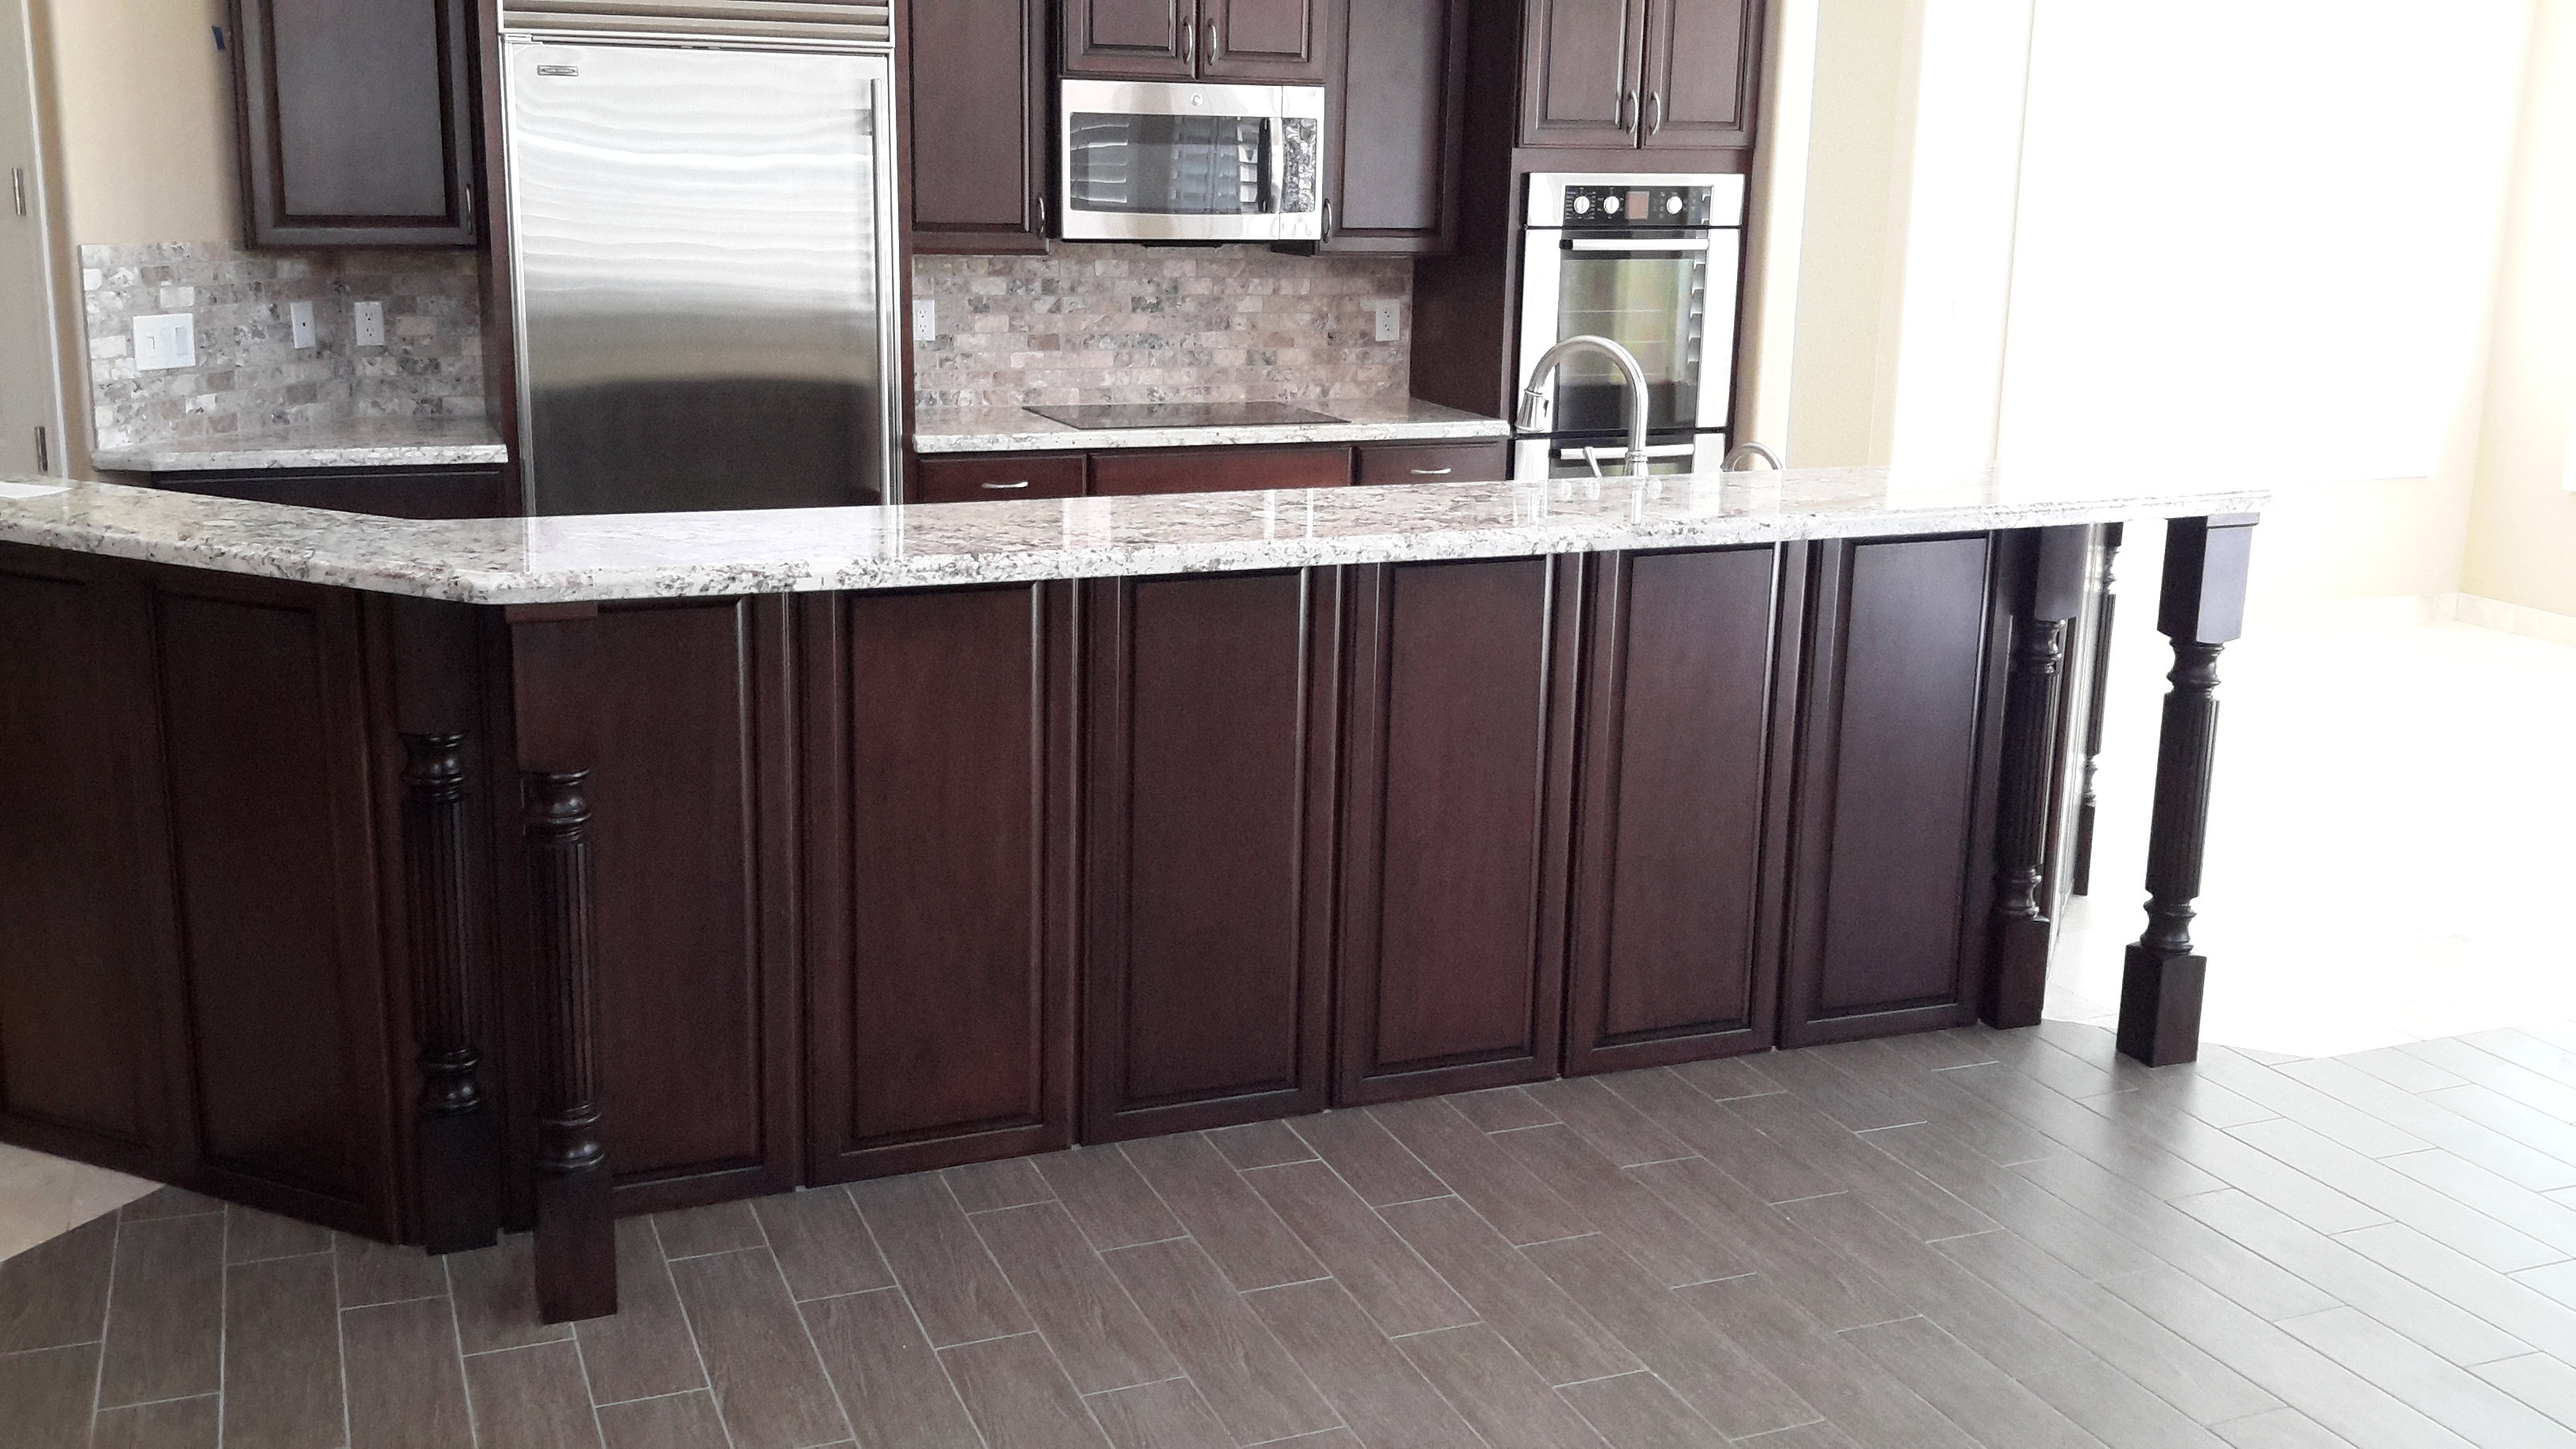 Kitchen Cabinets Scottsdale looking for kitchen remodeling ideas impact remodeling is the top scottsdale kitchen remodel contractor known Kitchen Cabinets Flooring Countertops Carpet Tile Granite Quartz Maple Kitchen Cabinets Scottsdale 2jpg